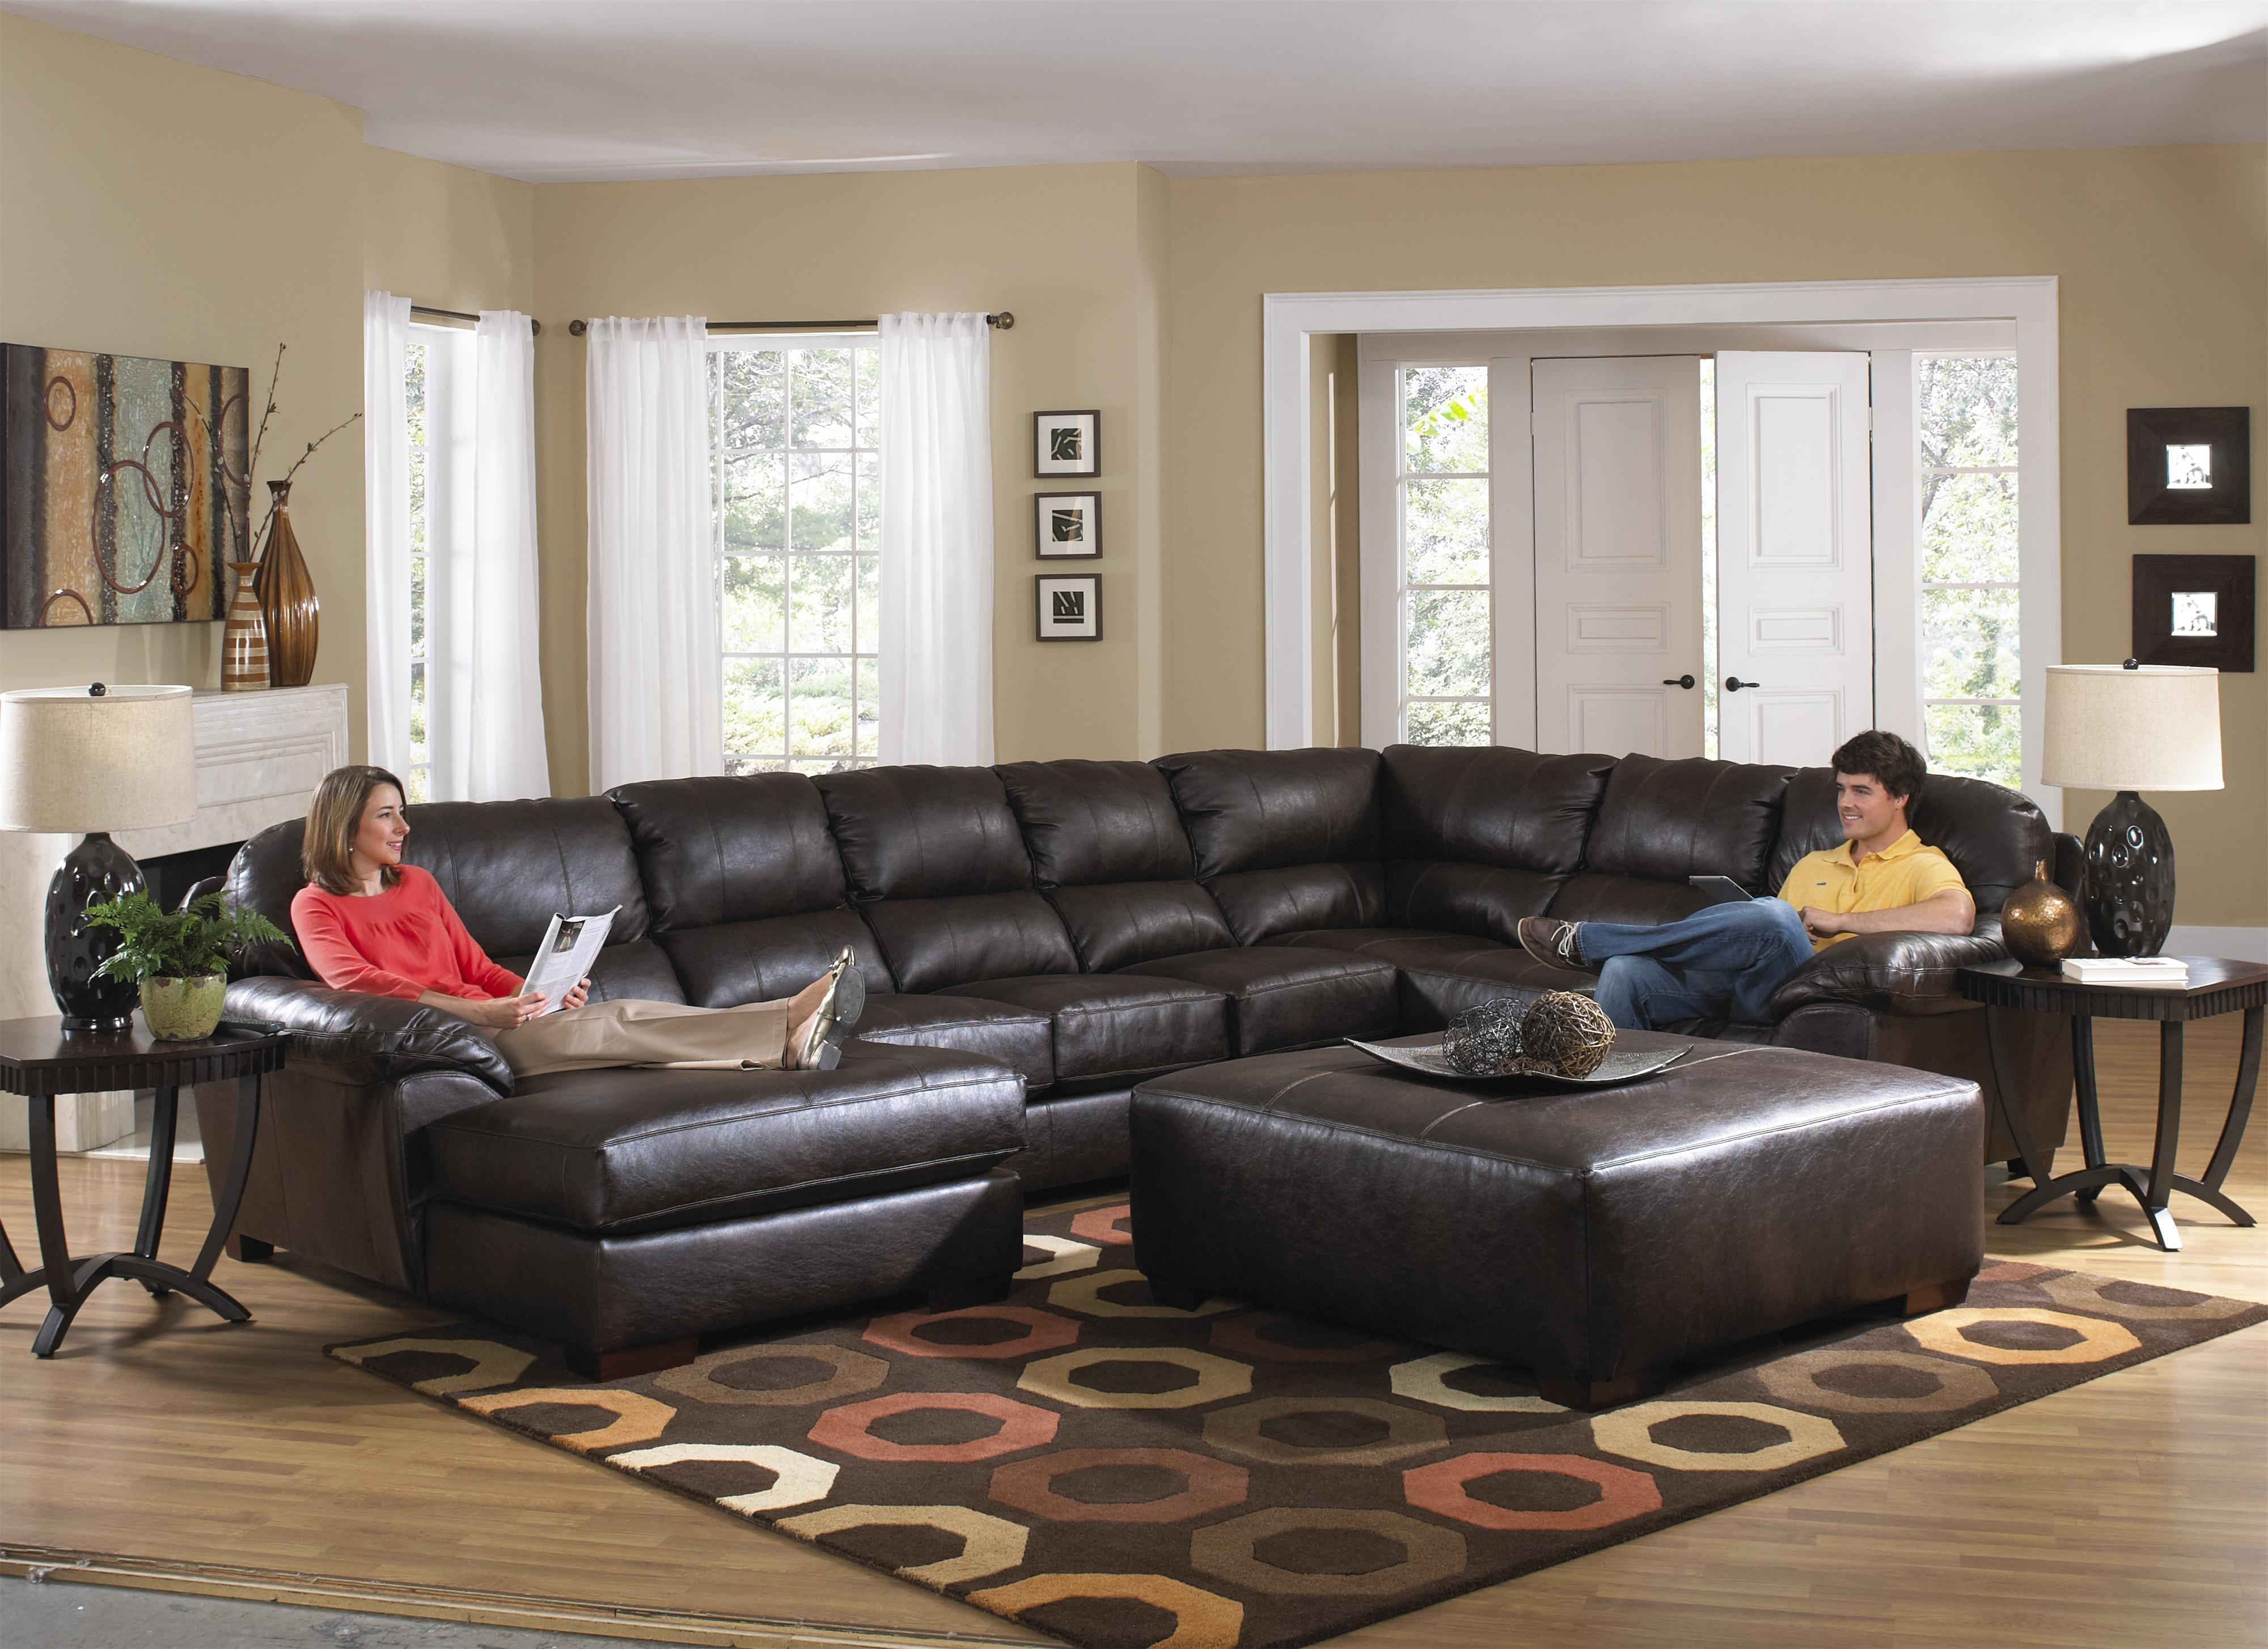 Huge Sofas Throughout Well Known Oversized Couches Ashley Furniture Extra Deep Couch Oversized (View 10 of 20)